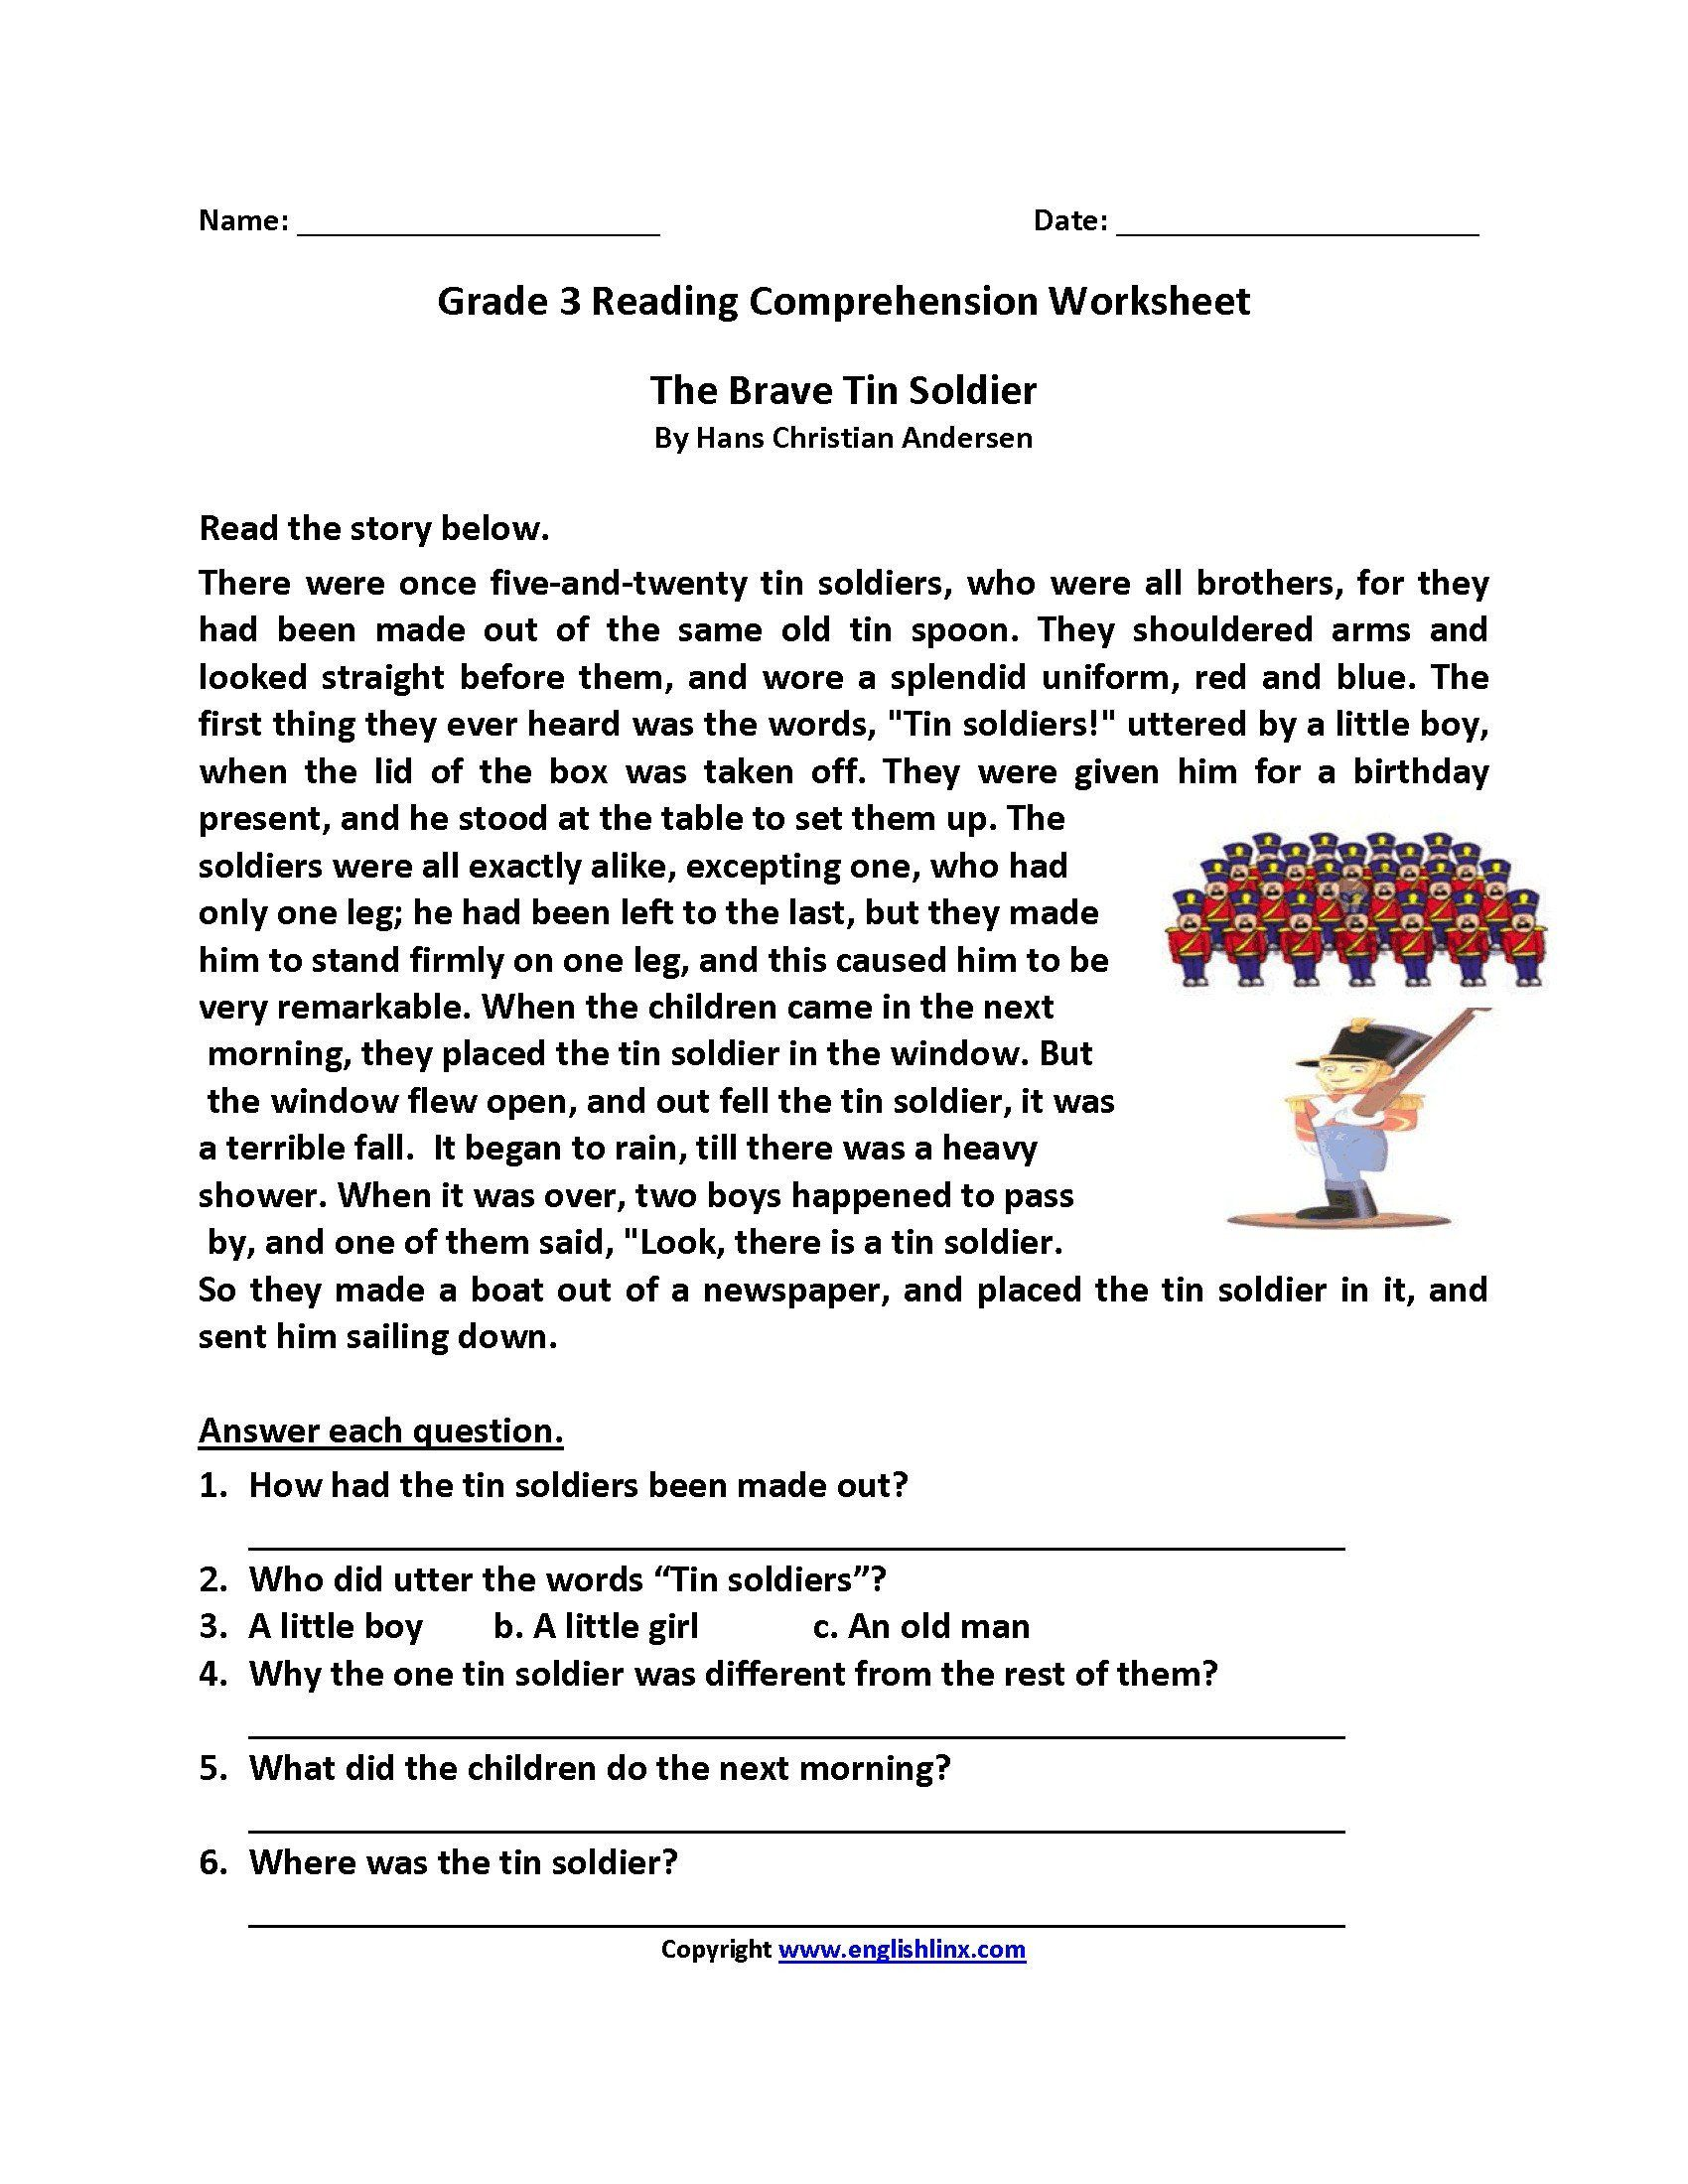 Drawing Conclusions Worksheets 2nd Grade Inference Worksheets 1st Gra…    2nd grade reading comprehension [ 2200 x 1700 Pixel ]